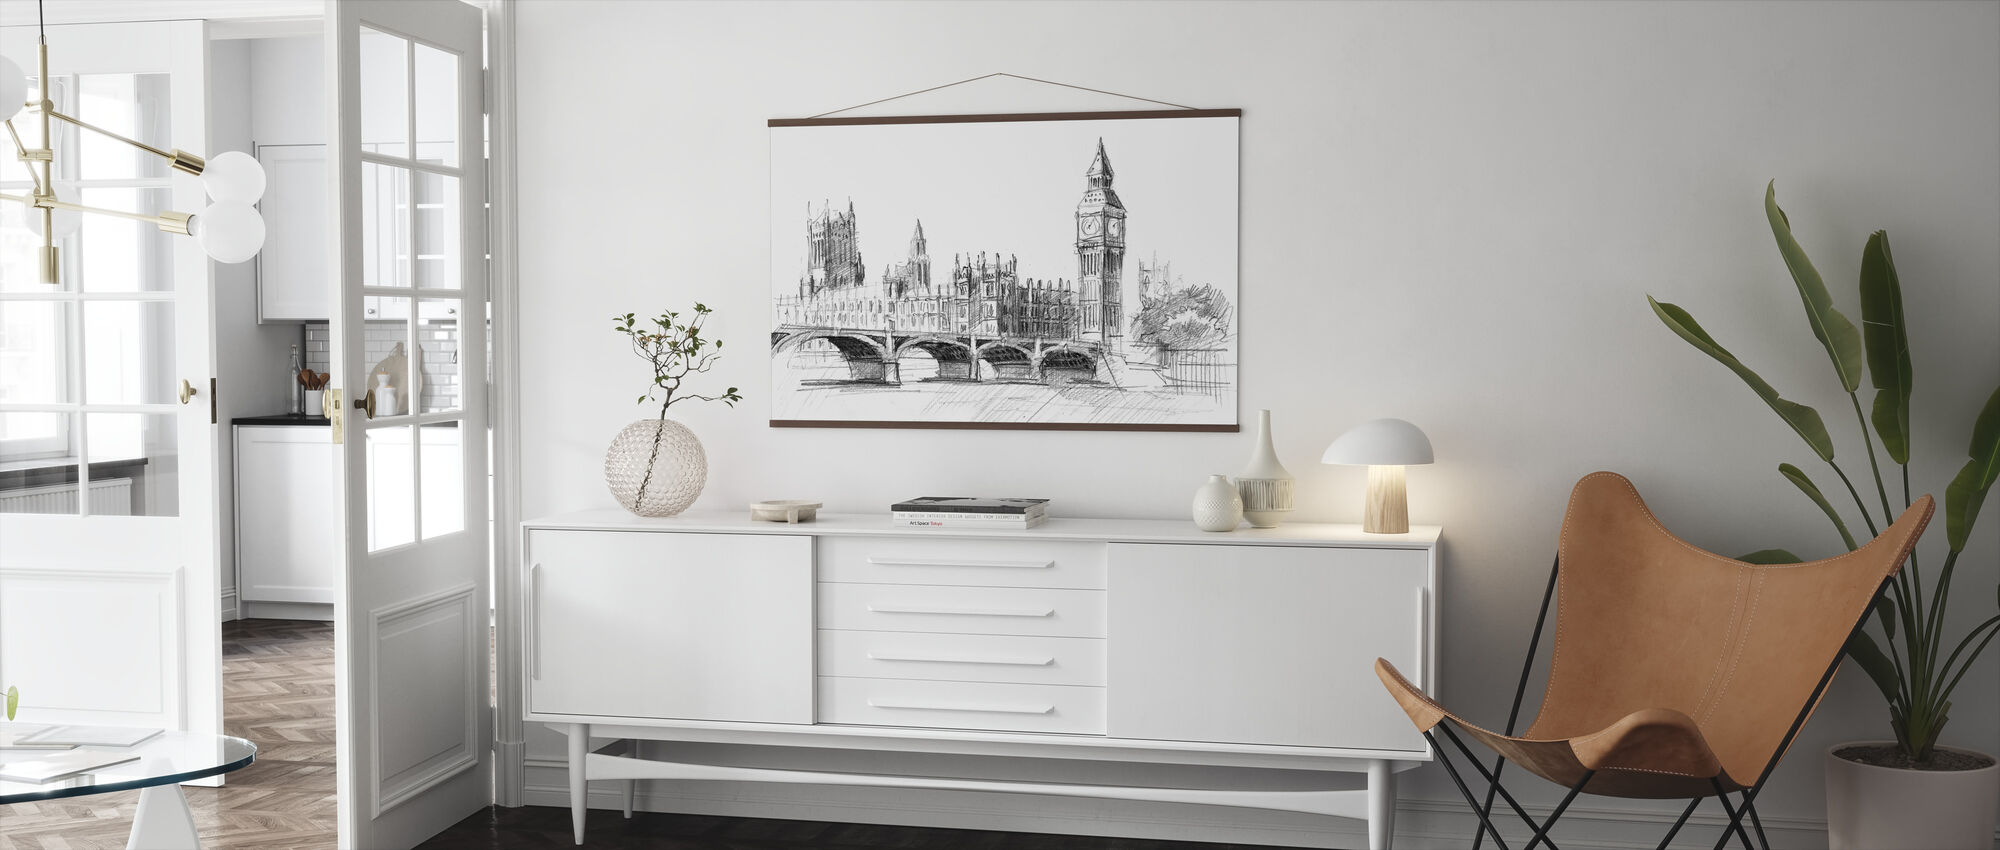 Big Ben in Black Lead - Poster - Living Room